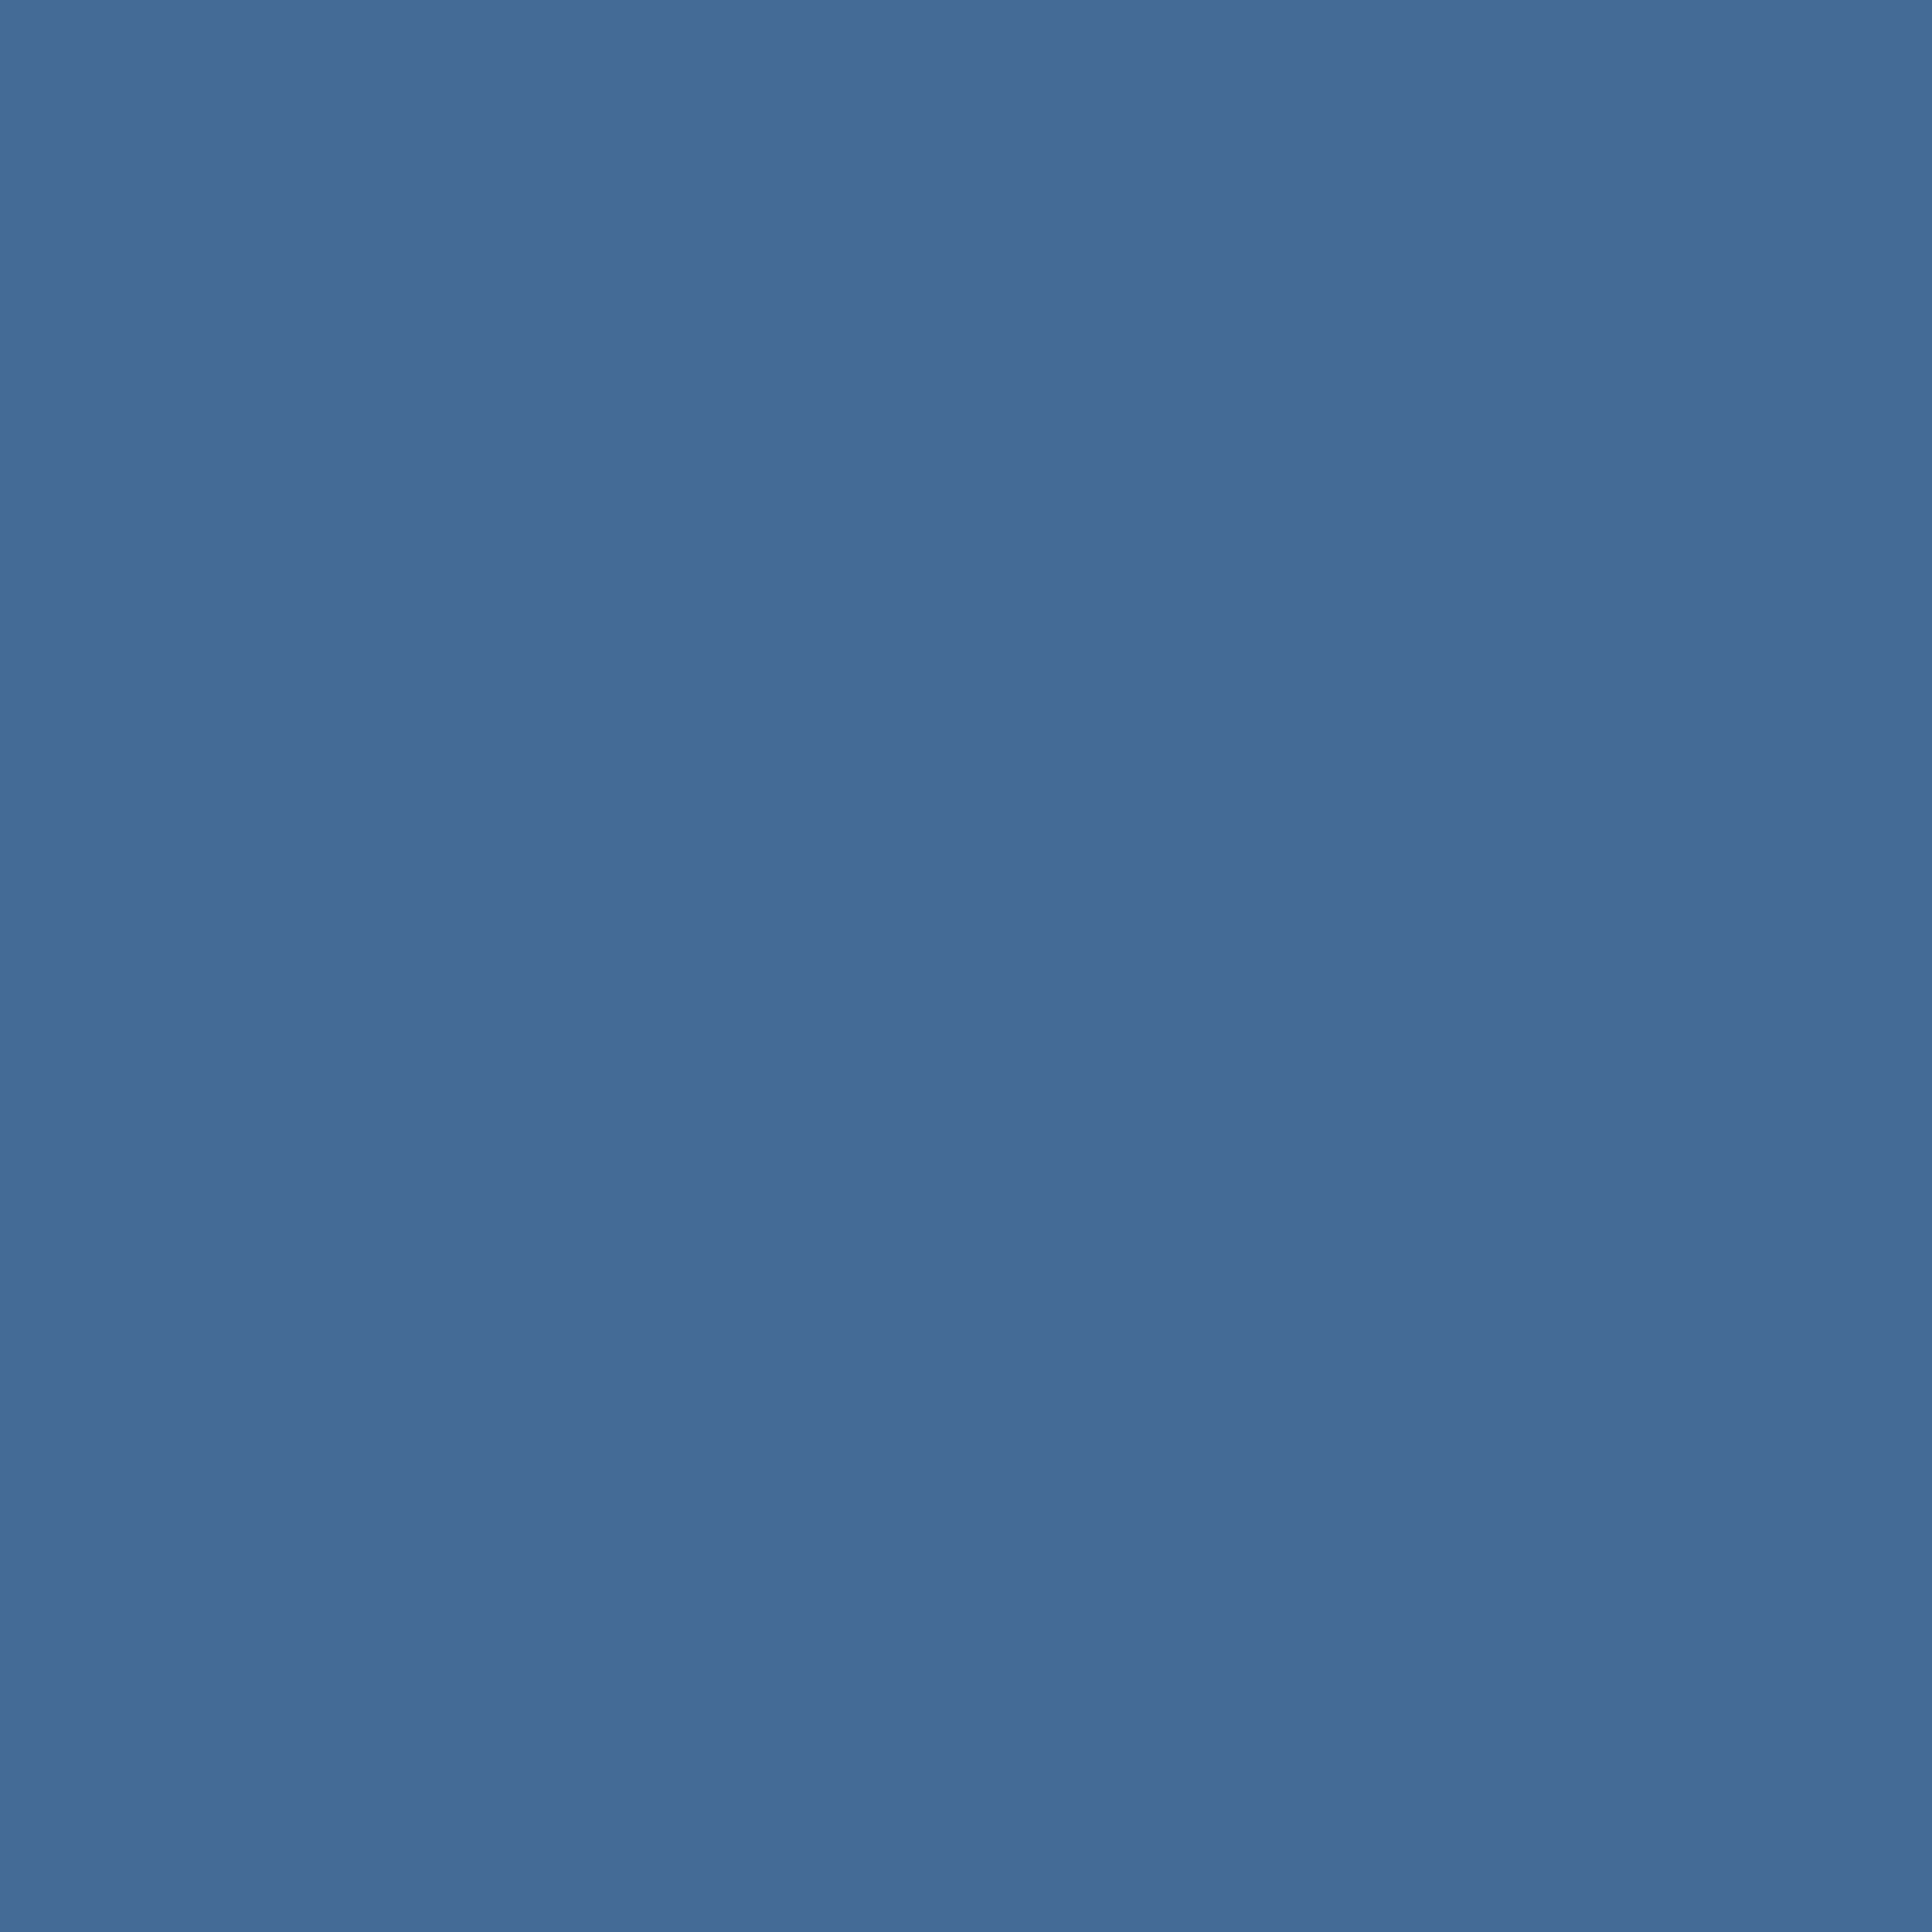 2732x2732 Queen Blue Solid Color Background